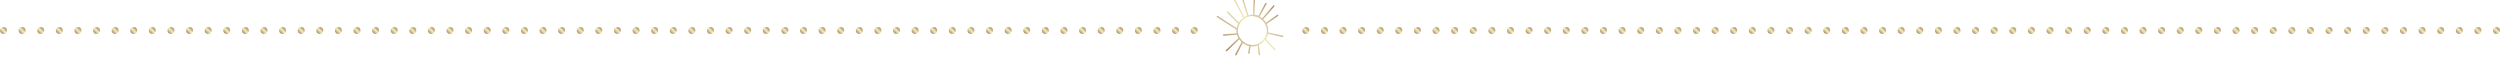 divider-sun.png